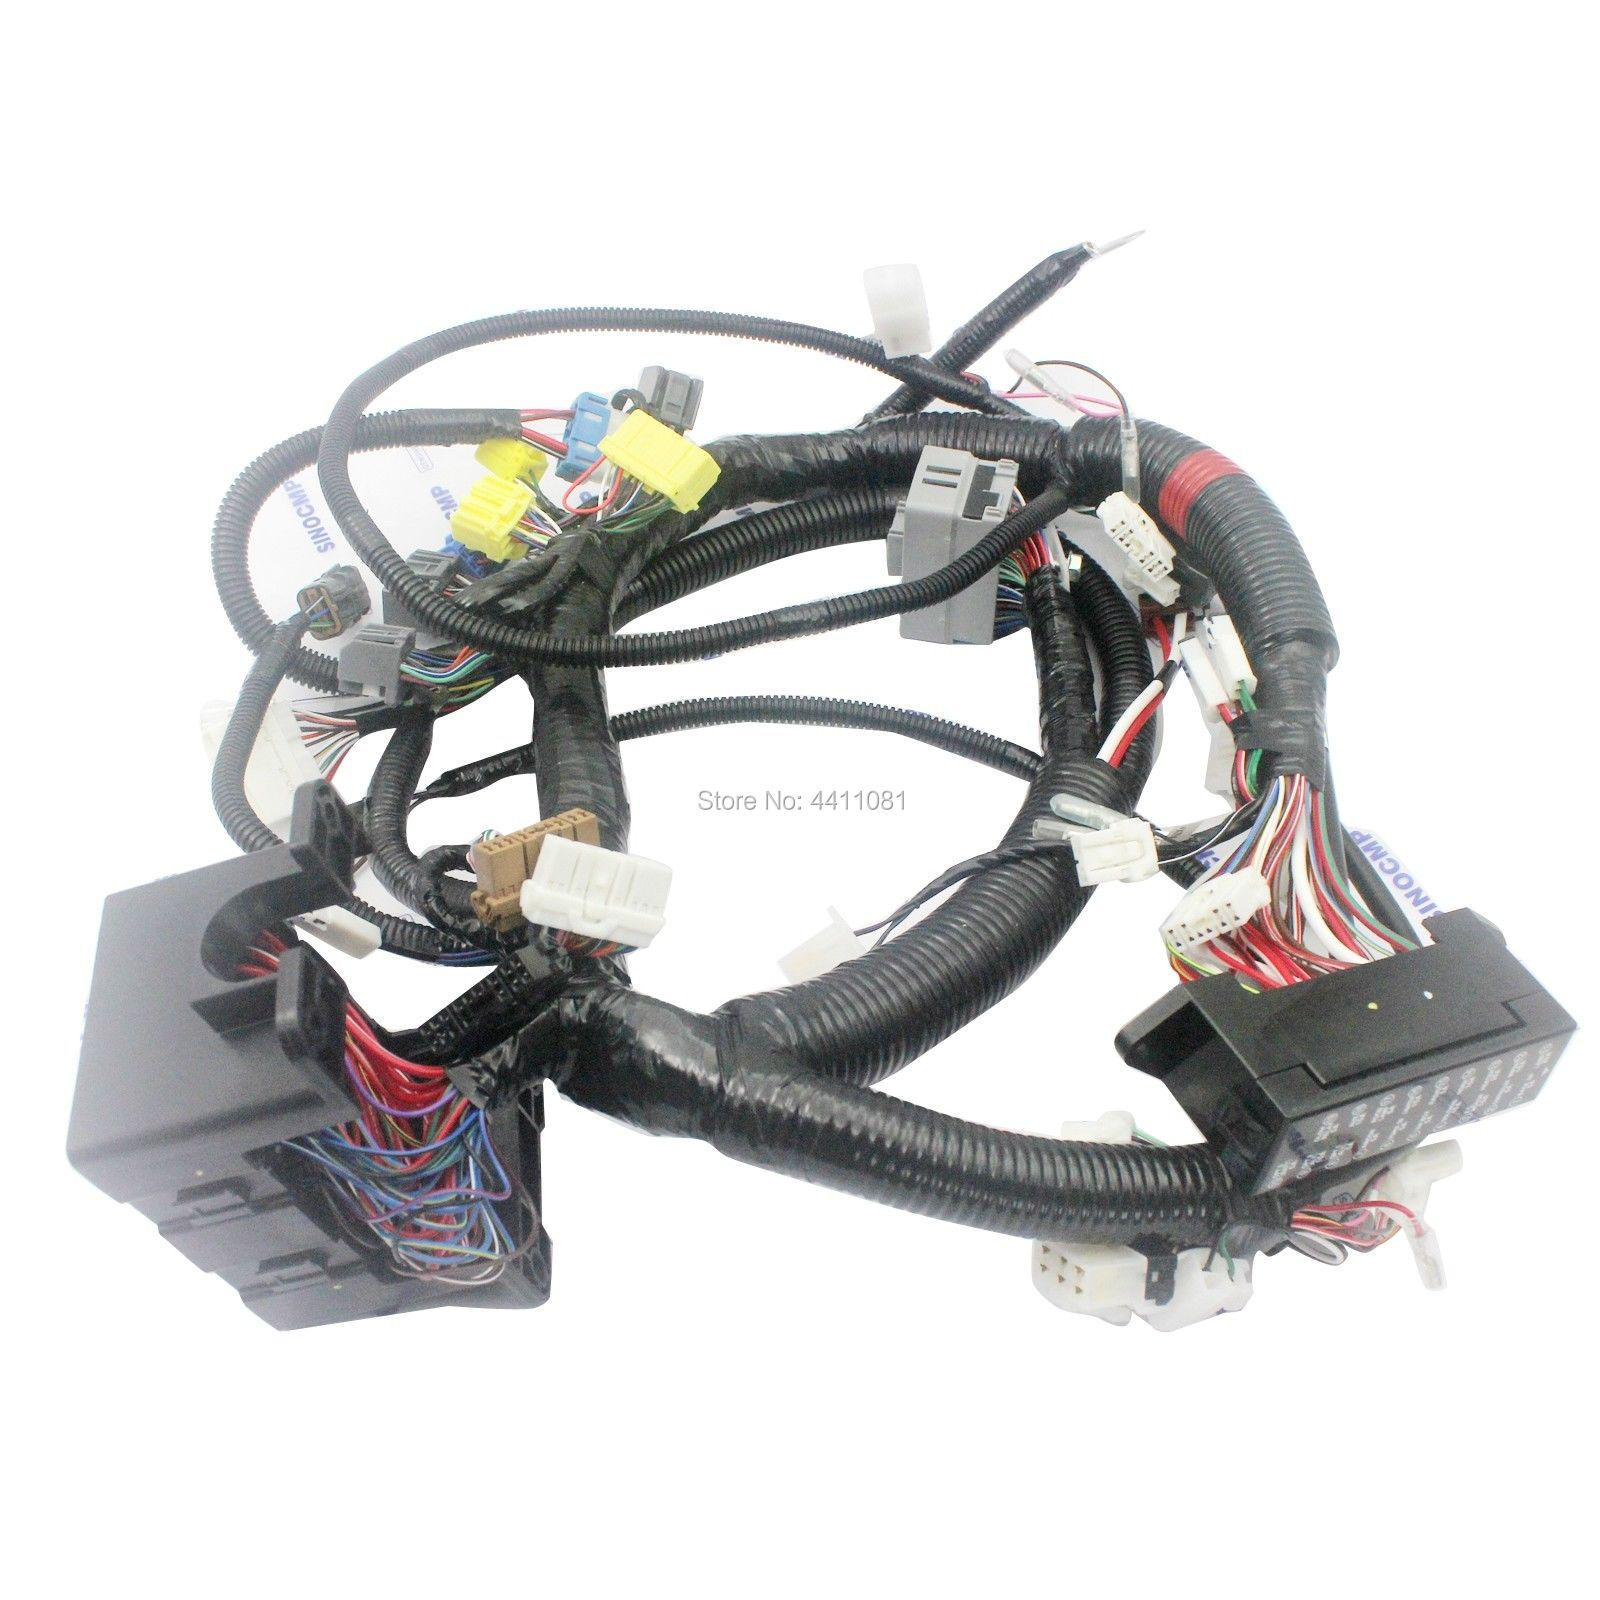 ZX200-1 ZAXIS-1 Inner Inside Wiring Harness 0003322 For Hitachi Excavator Inner Wire Cable, 3 Month WarrantyZX200-1 ZAXIS-1 Inner Inside Wiring Harness 0003322 For Hitachi Excavator Inner Wire Cable, 3 Month Warranty